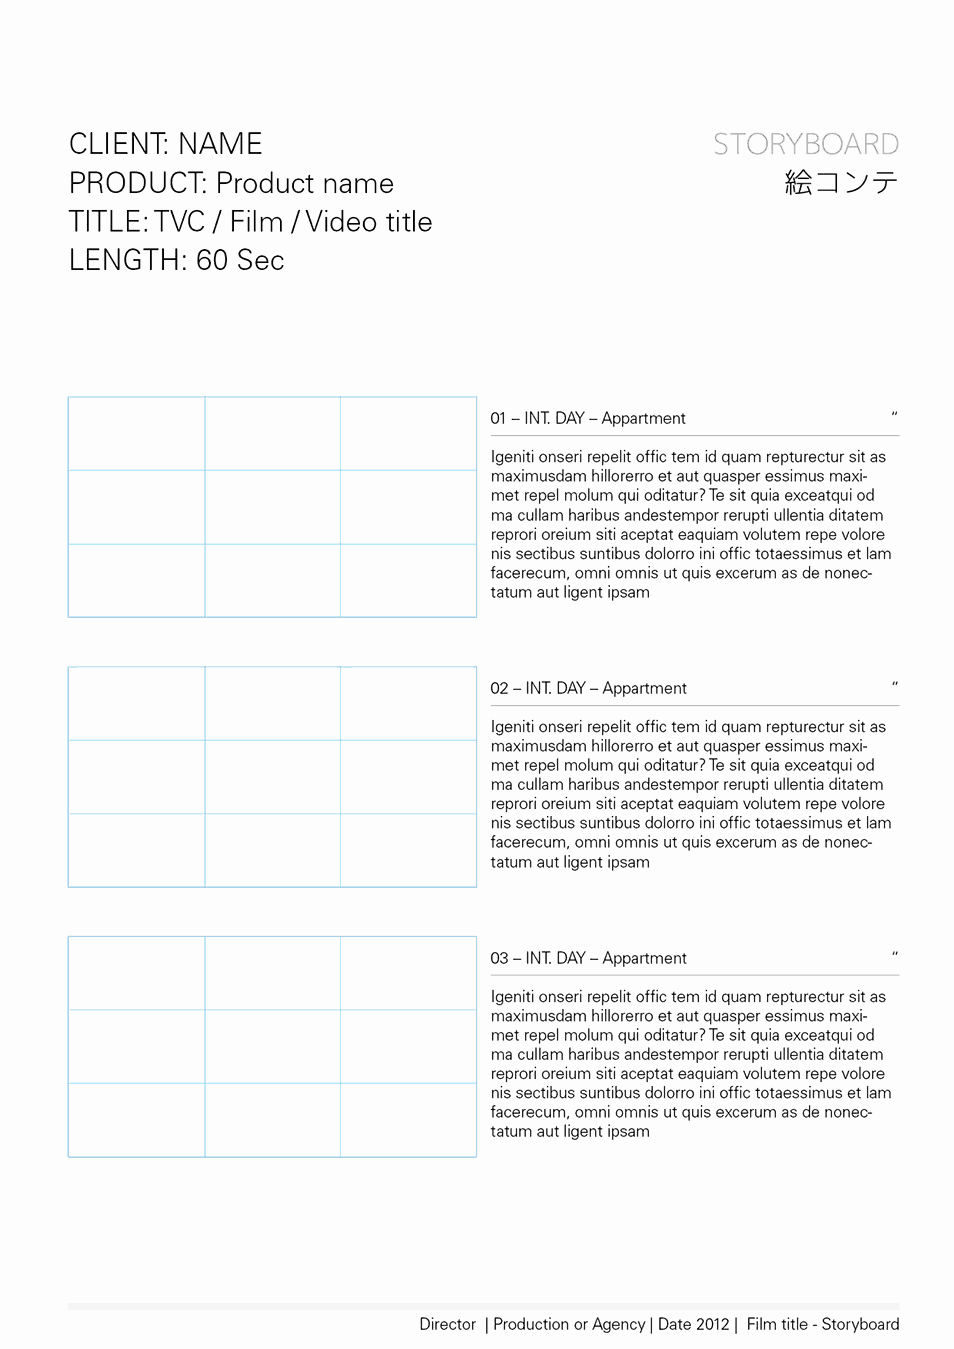 Film Story Board Template Fresh Storyboard Templates – Storyboards